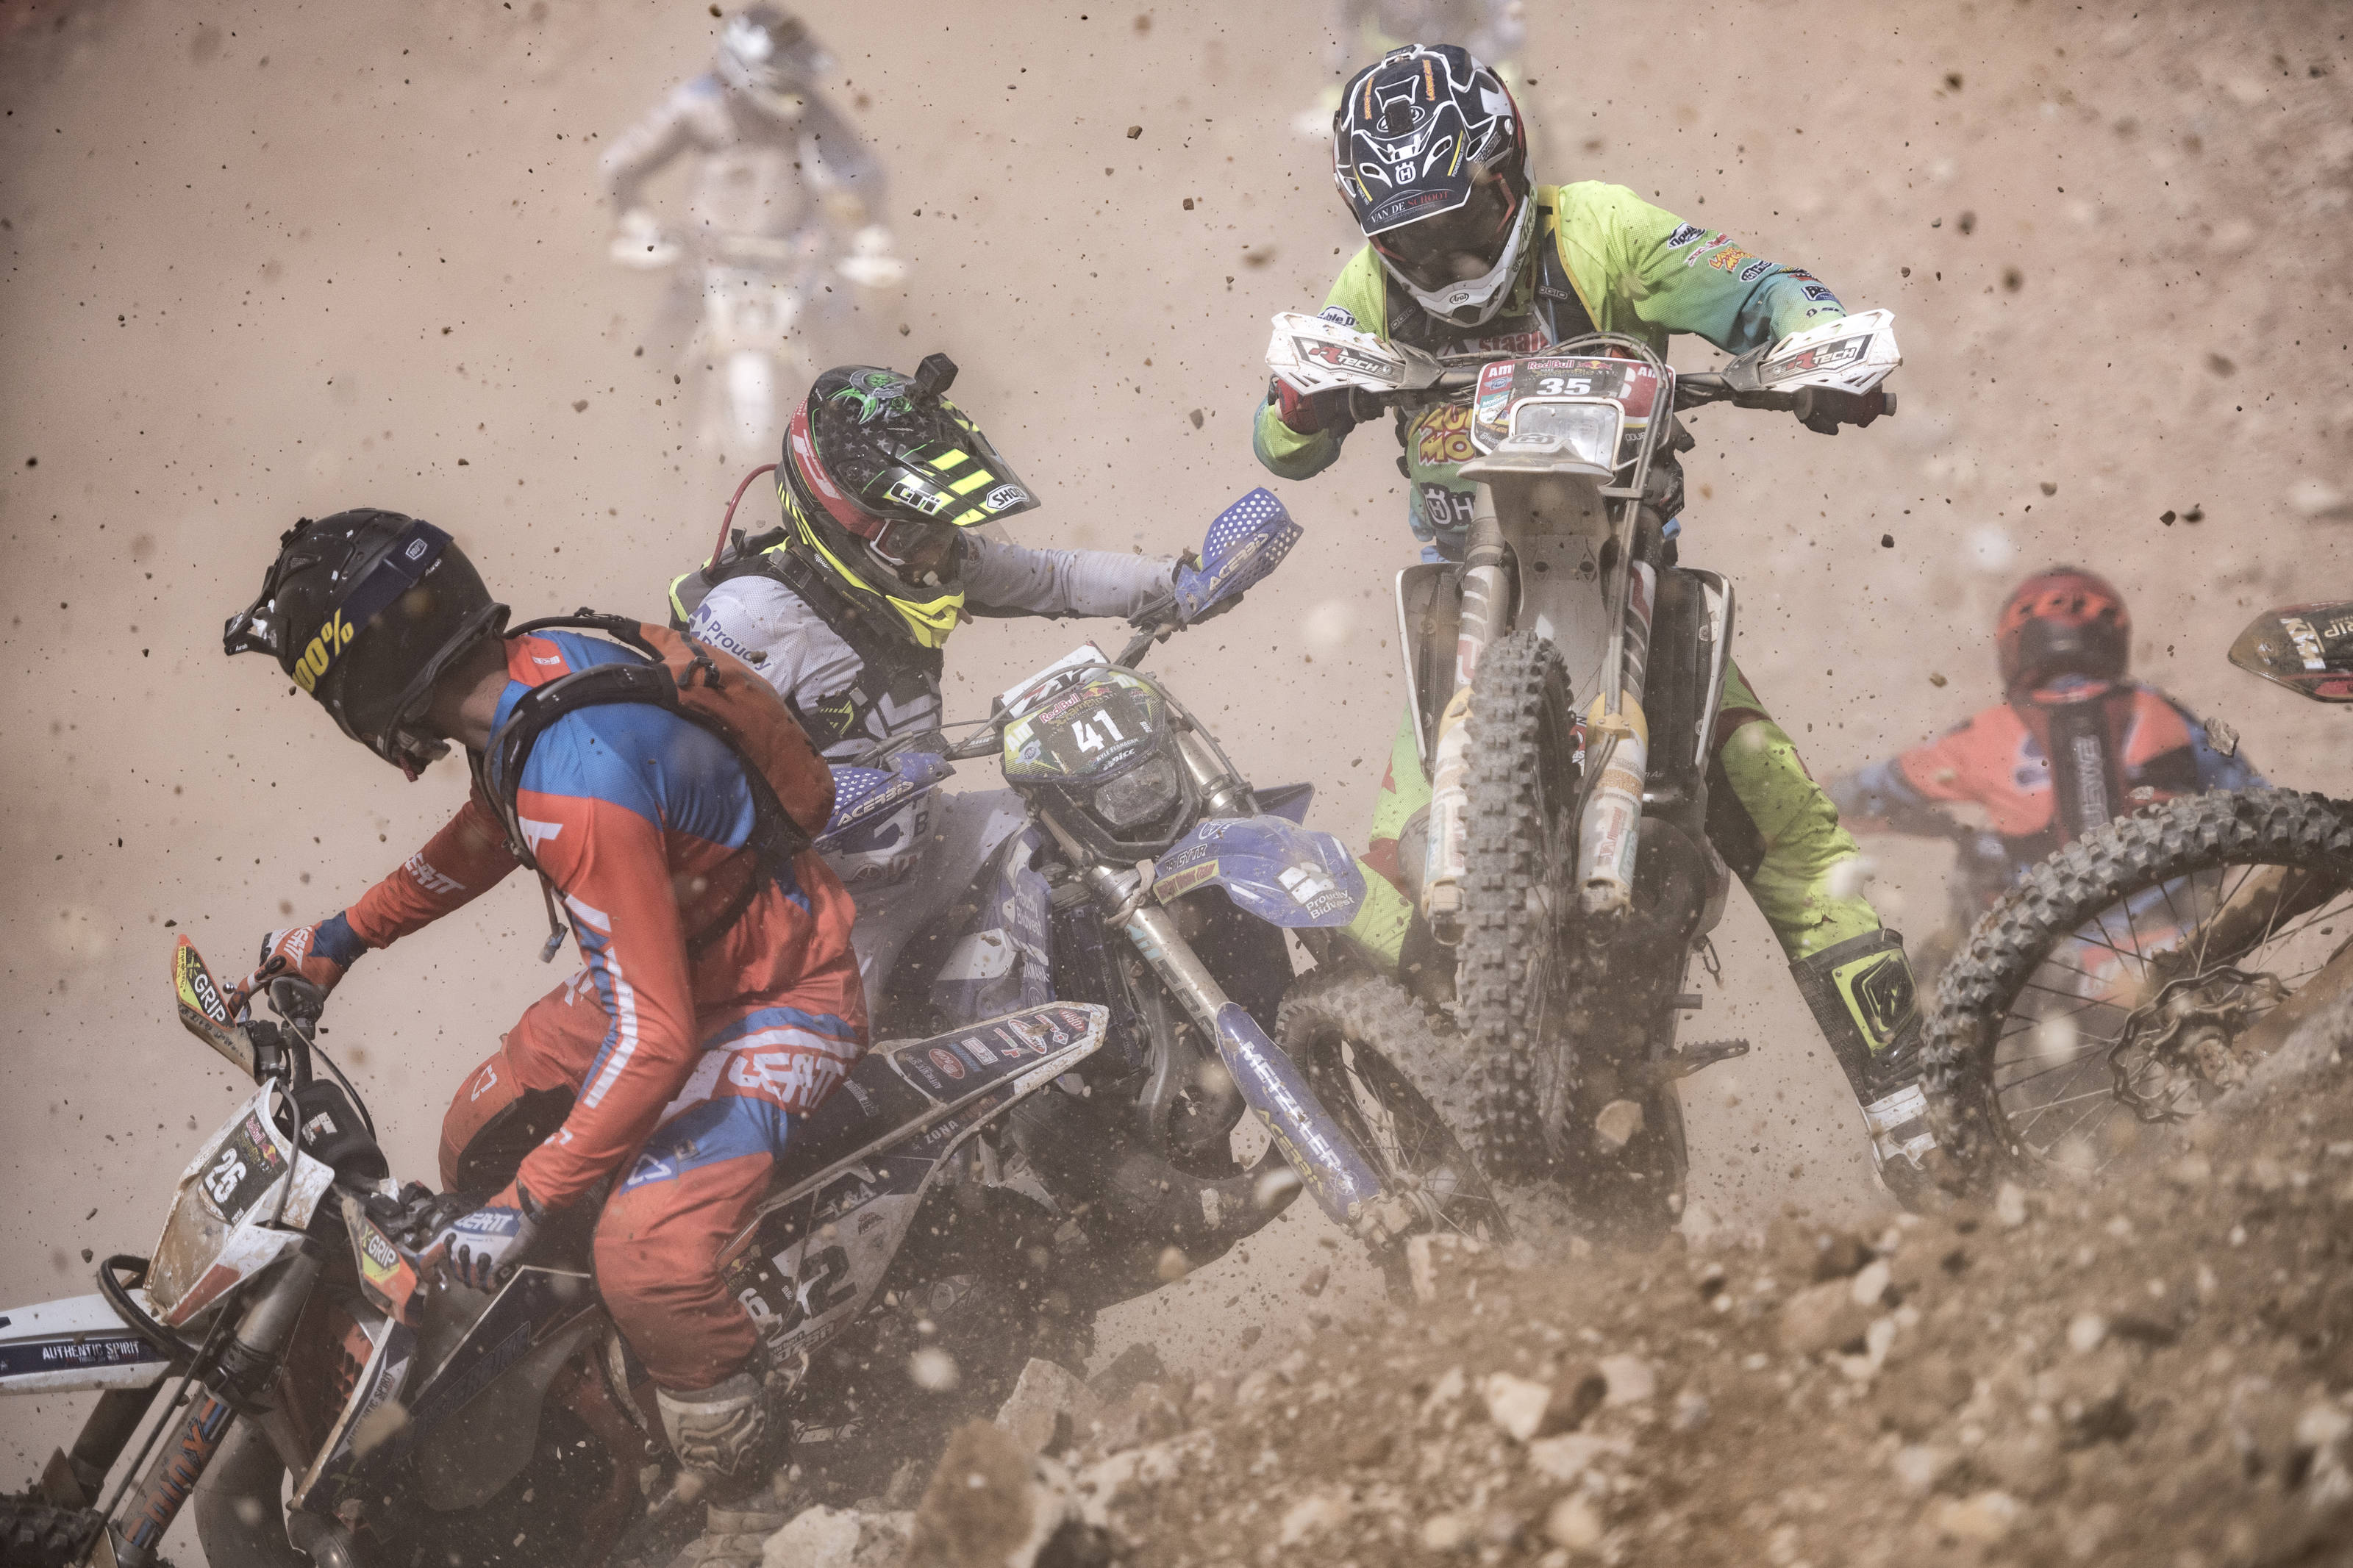 AP-1VV5SFZ9D2111_news Graham Jarvis cucerește Erzbergrodeo Red Bull Hare Scramble